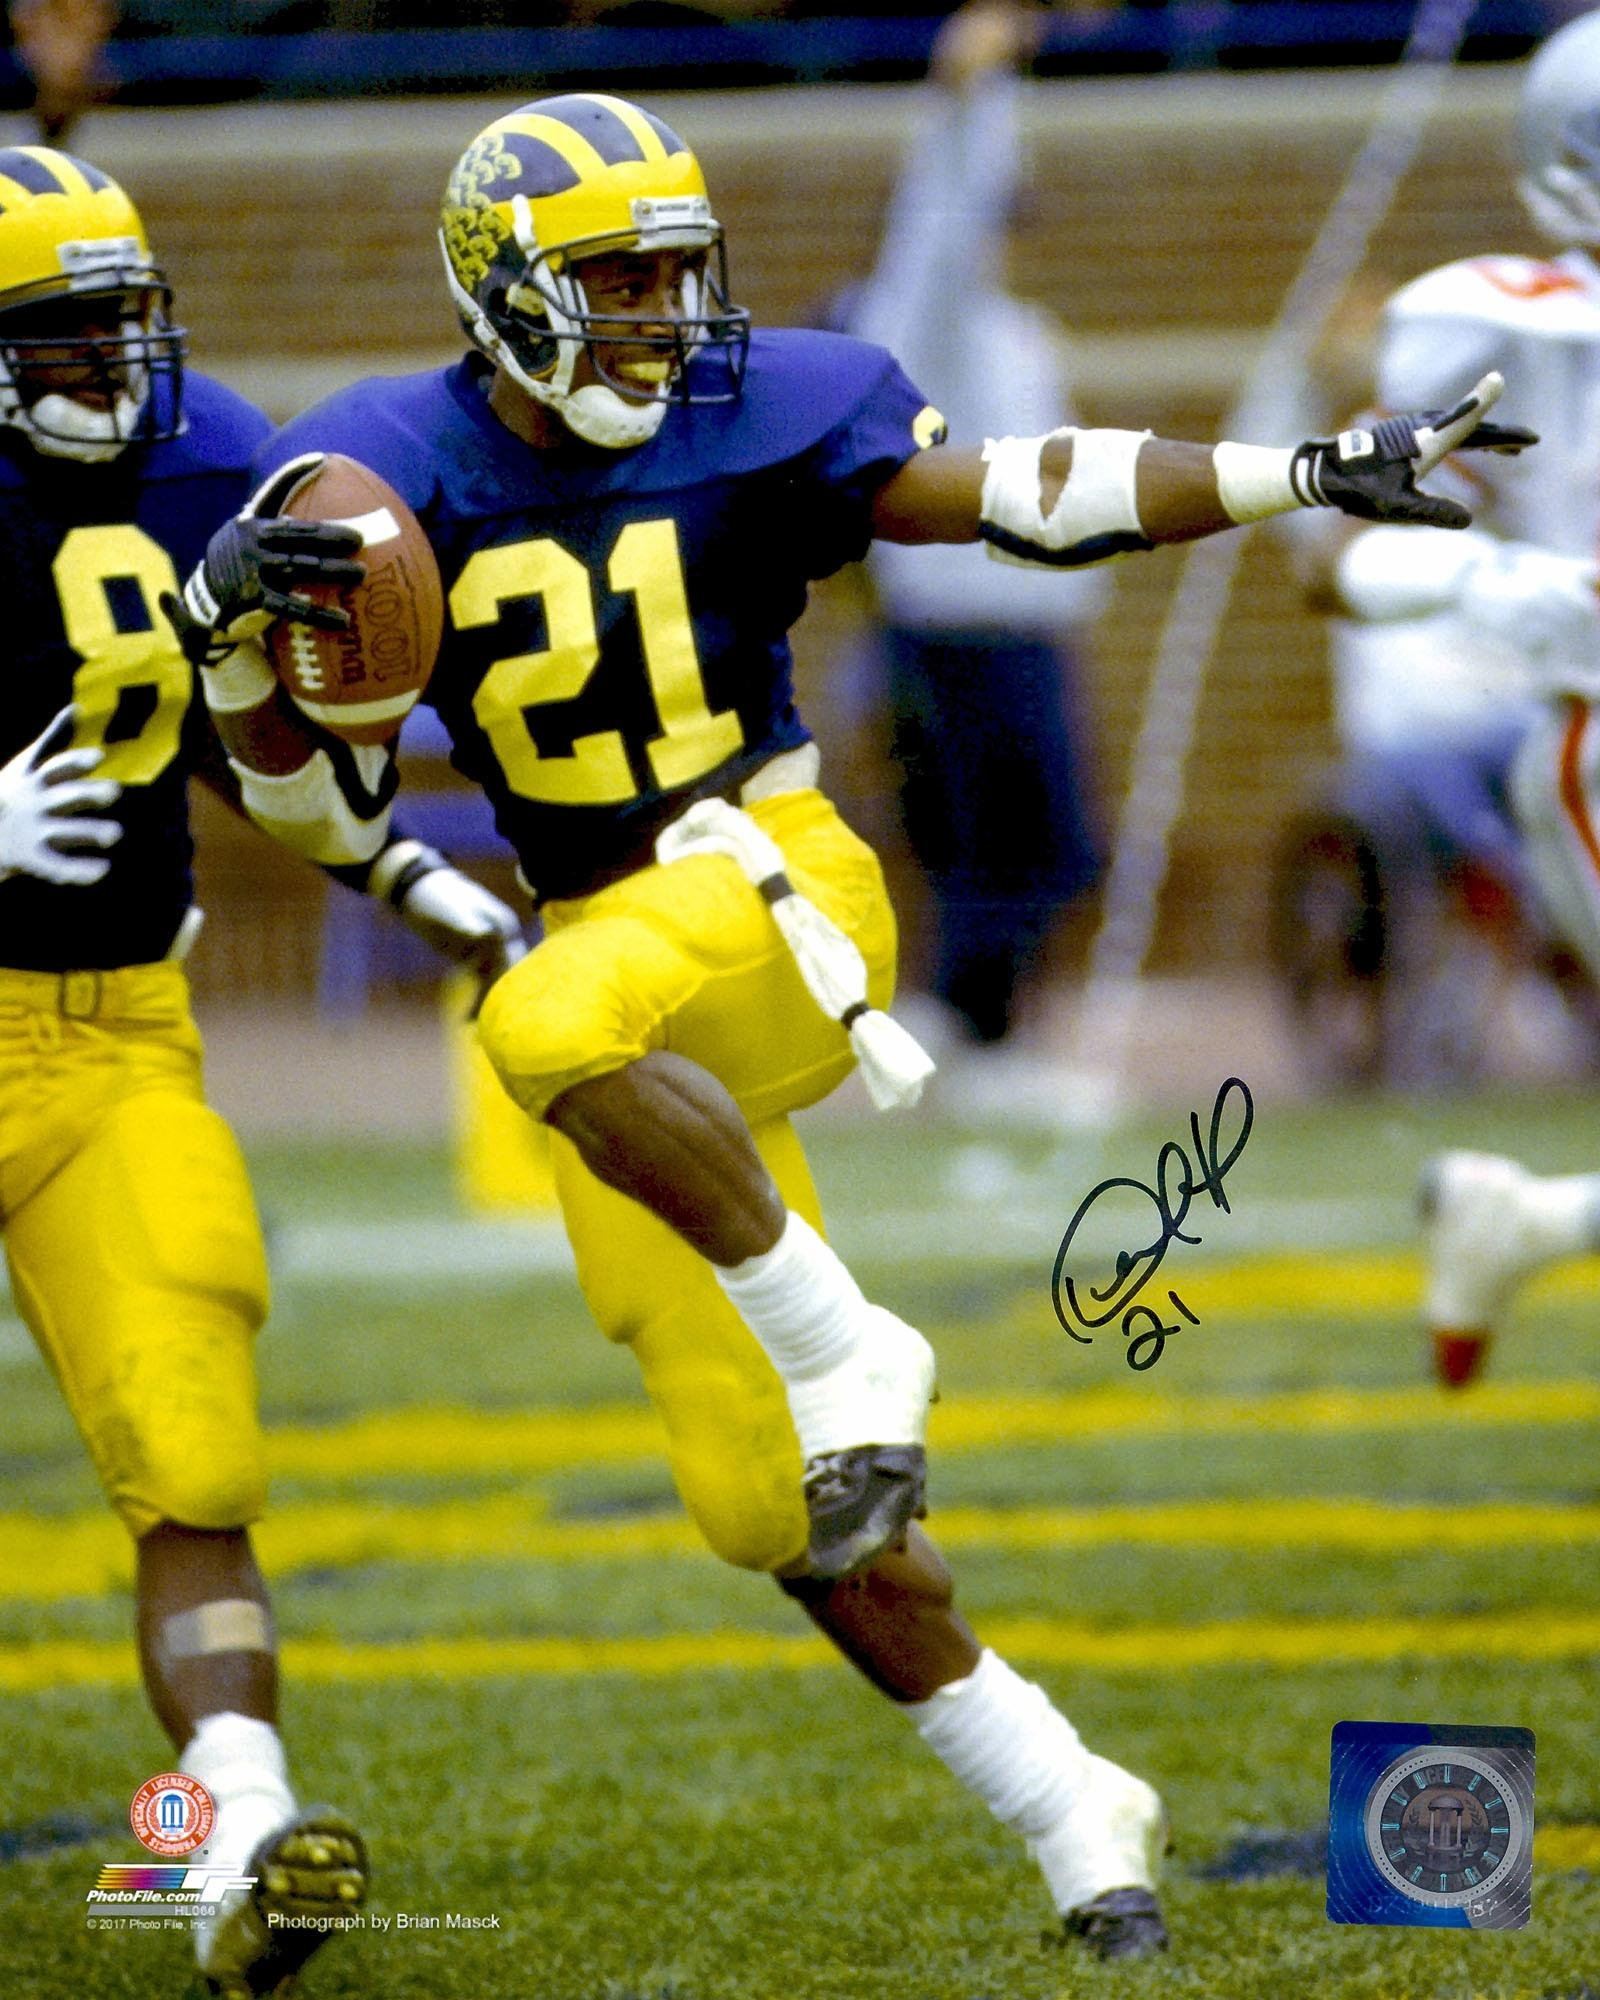 "Desmond Howard Michigan Wolverines Autographed 8"" x 10"" Heisman Pose Photograph Fanatics Authentic Certified"